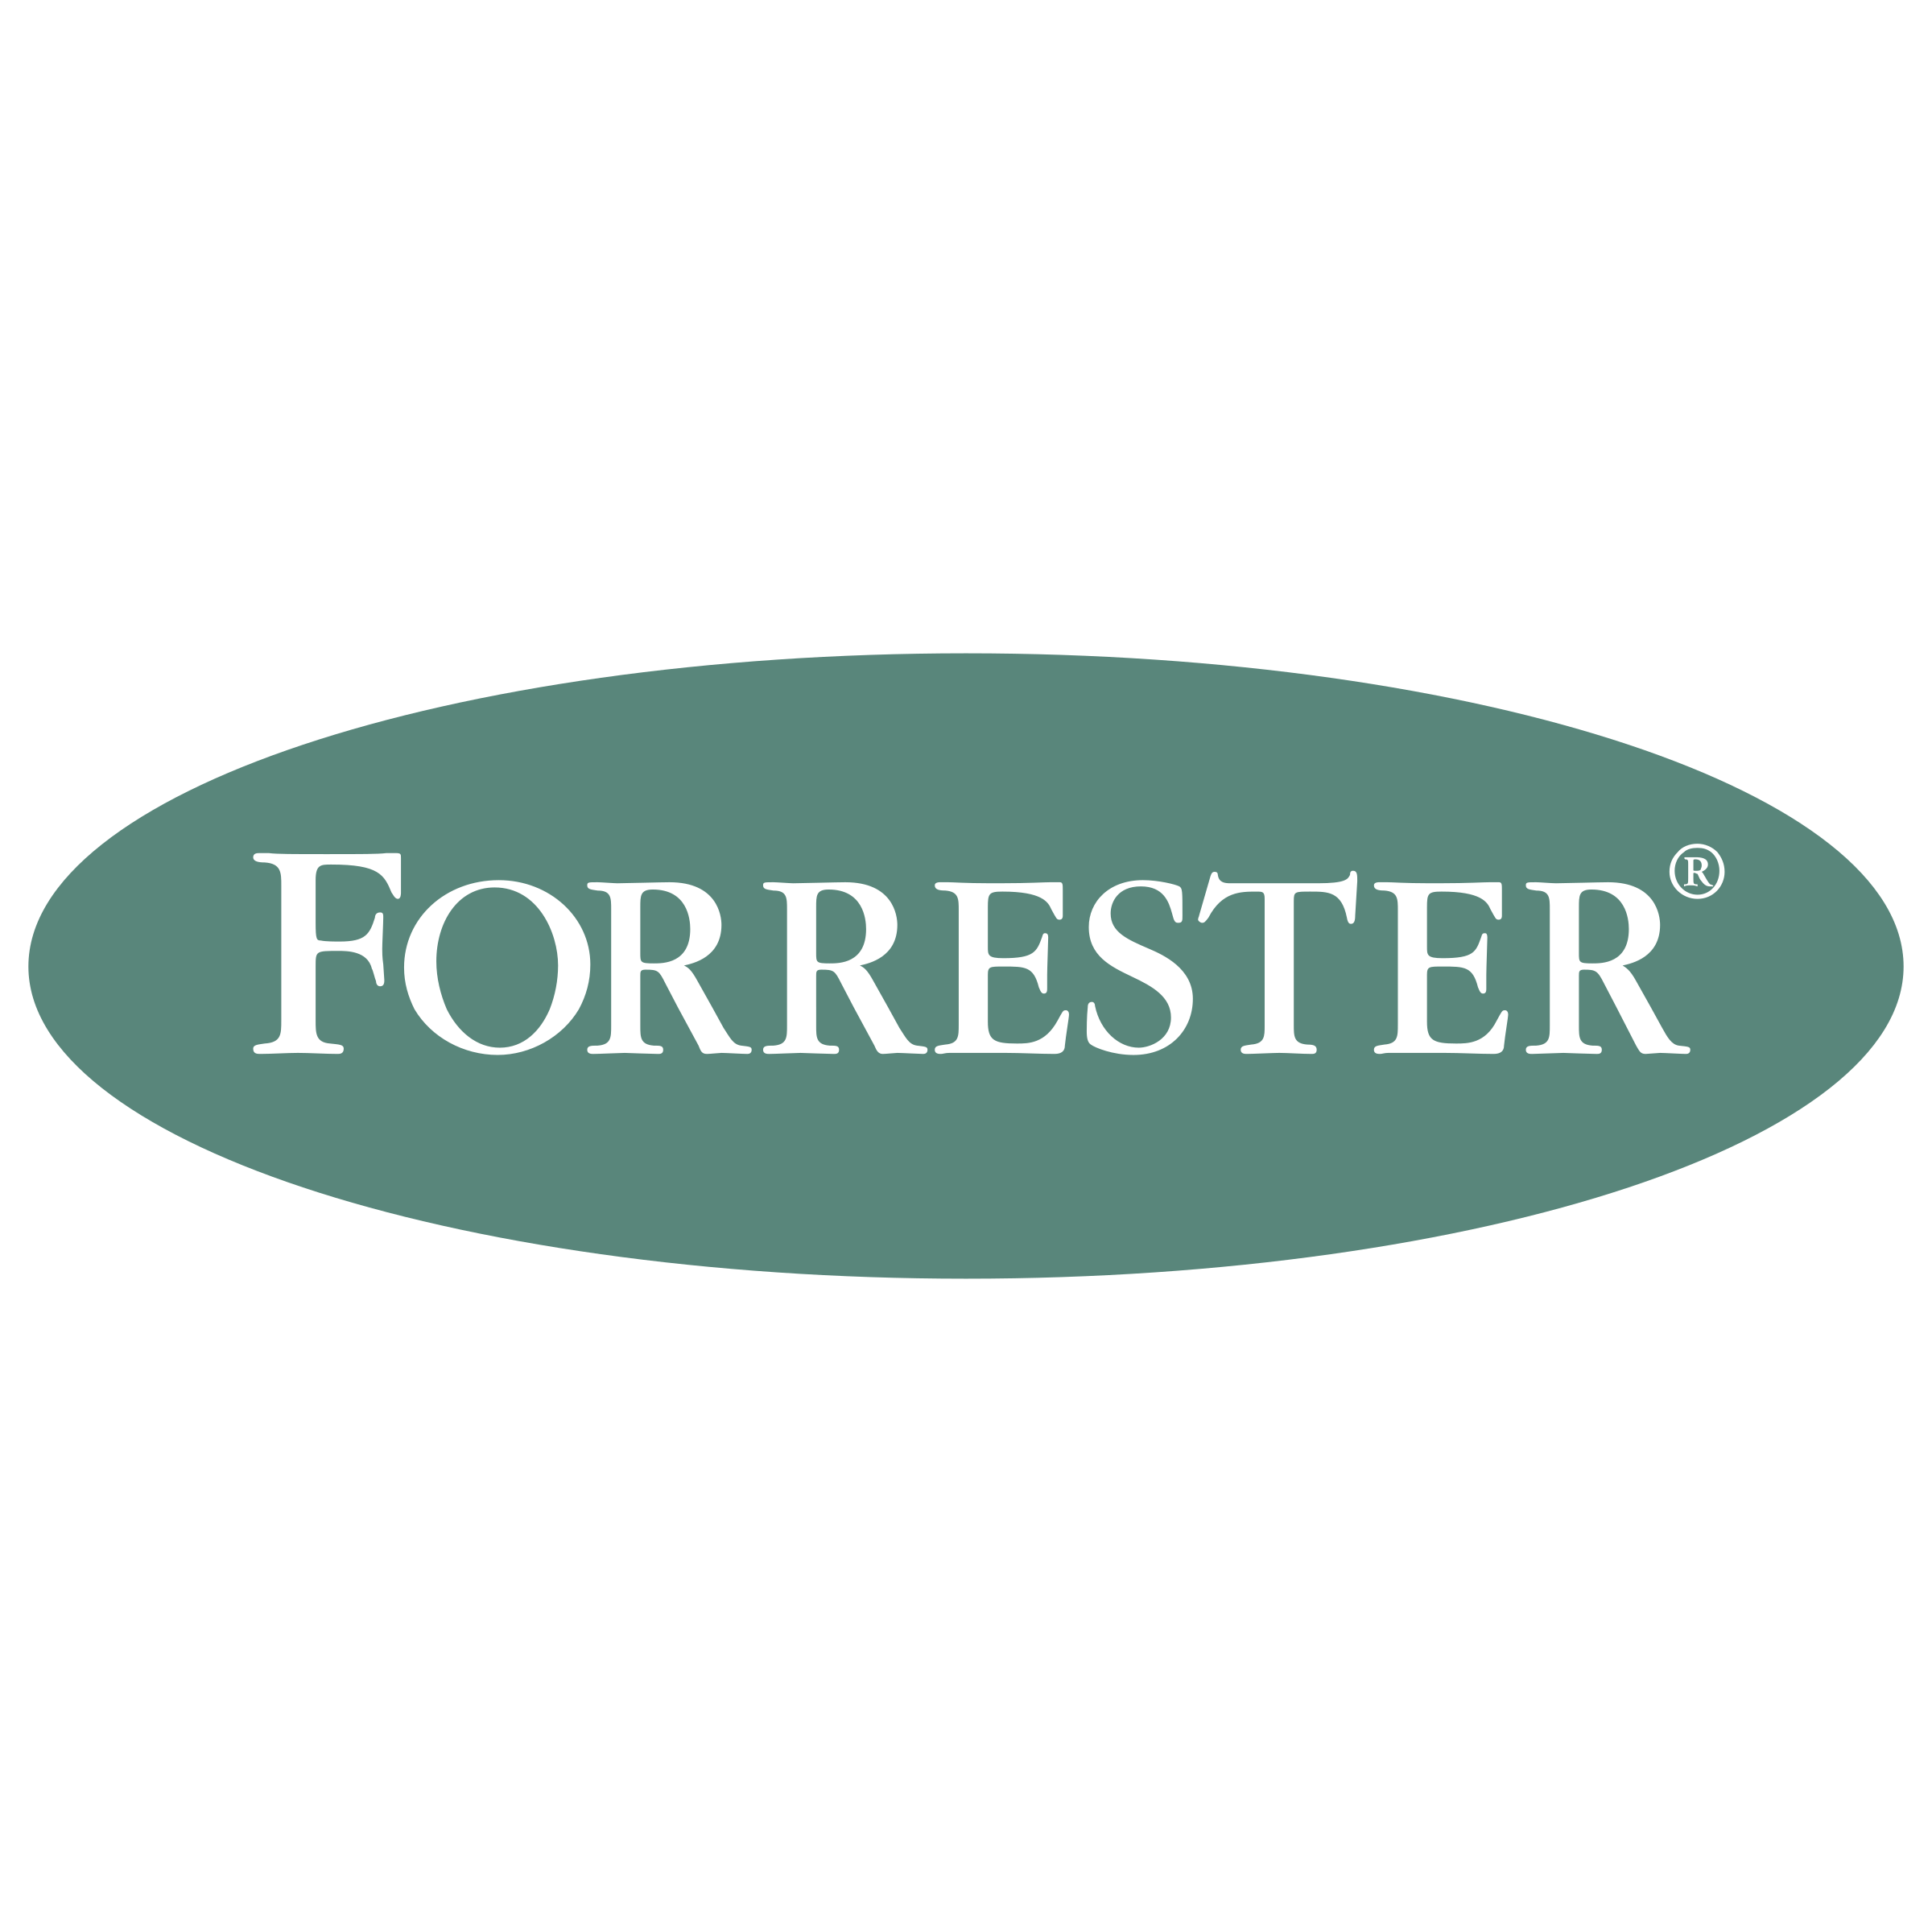 Forrester Logo PNG Transparent & SVG Vector.